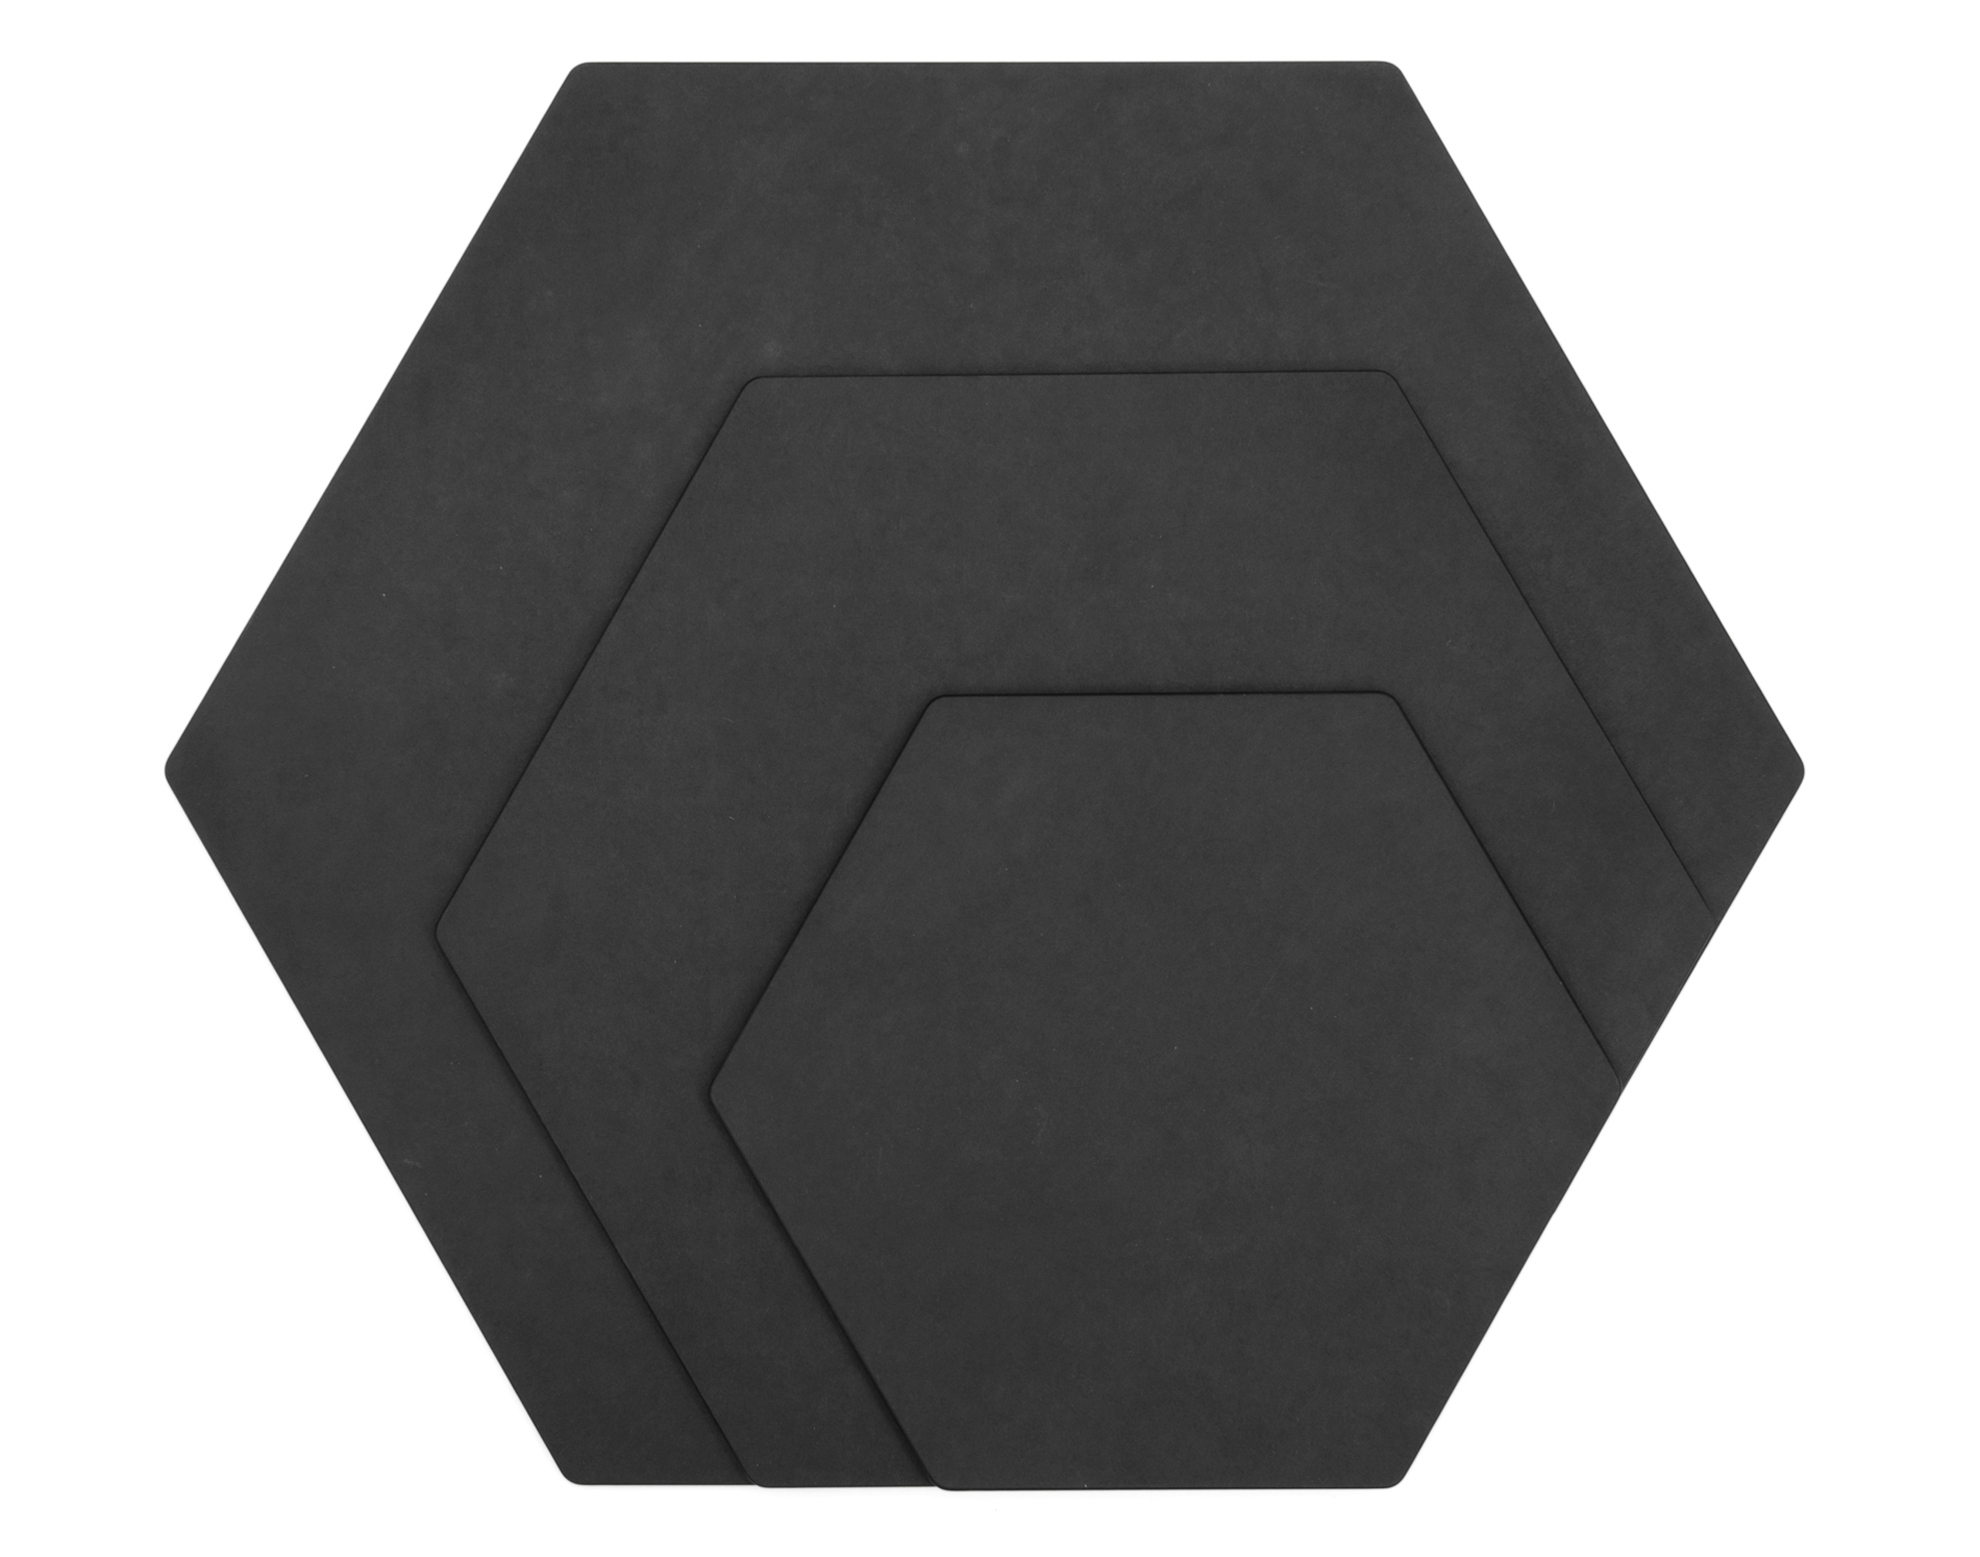 Hexagon Bathroom Tiles  Tiles Direct